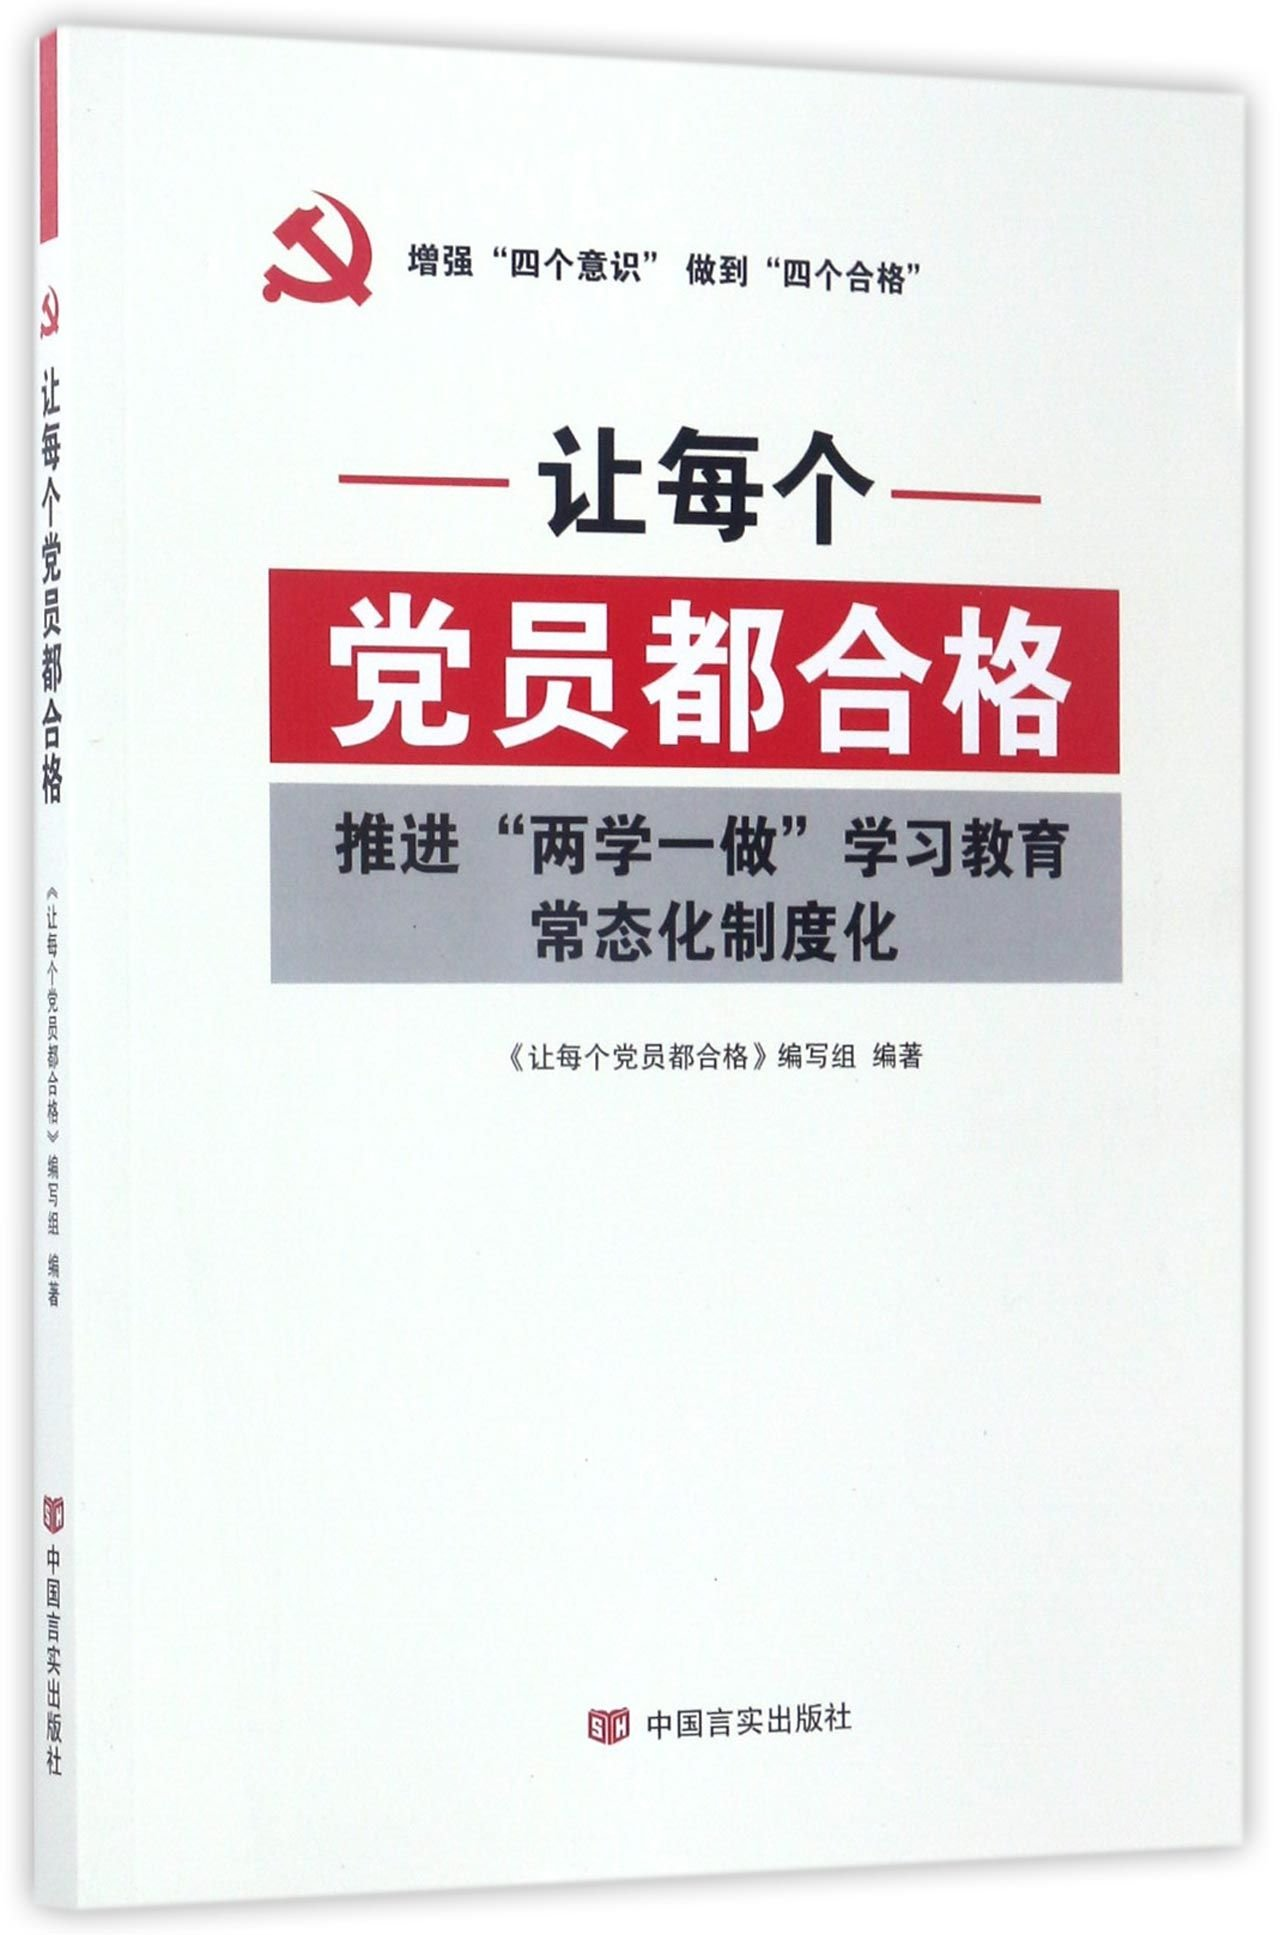 Let Every Party Member Qualified: Normalize and Systematize the Education of Two Studies & One Action (Chinese Edition) pdf epub